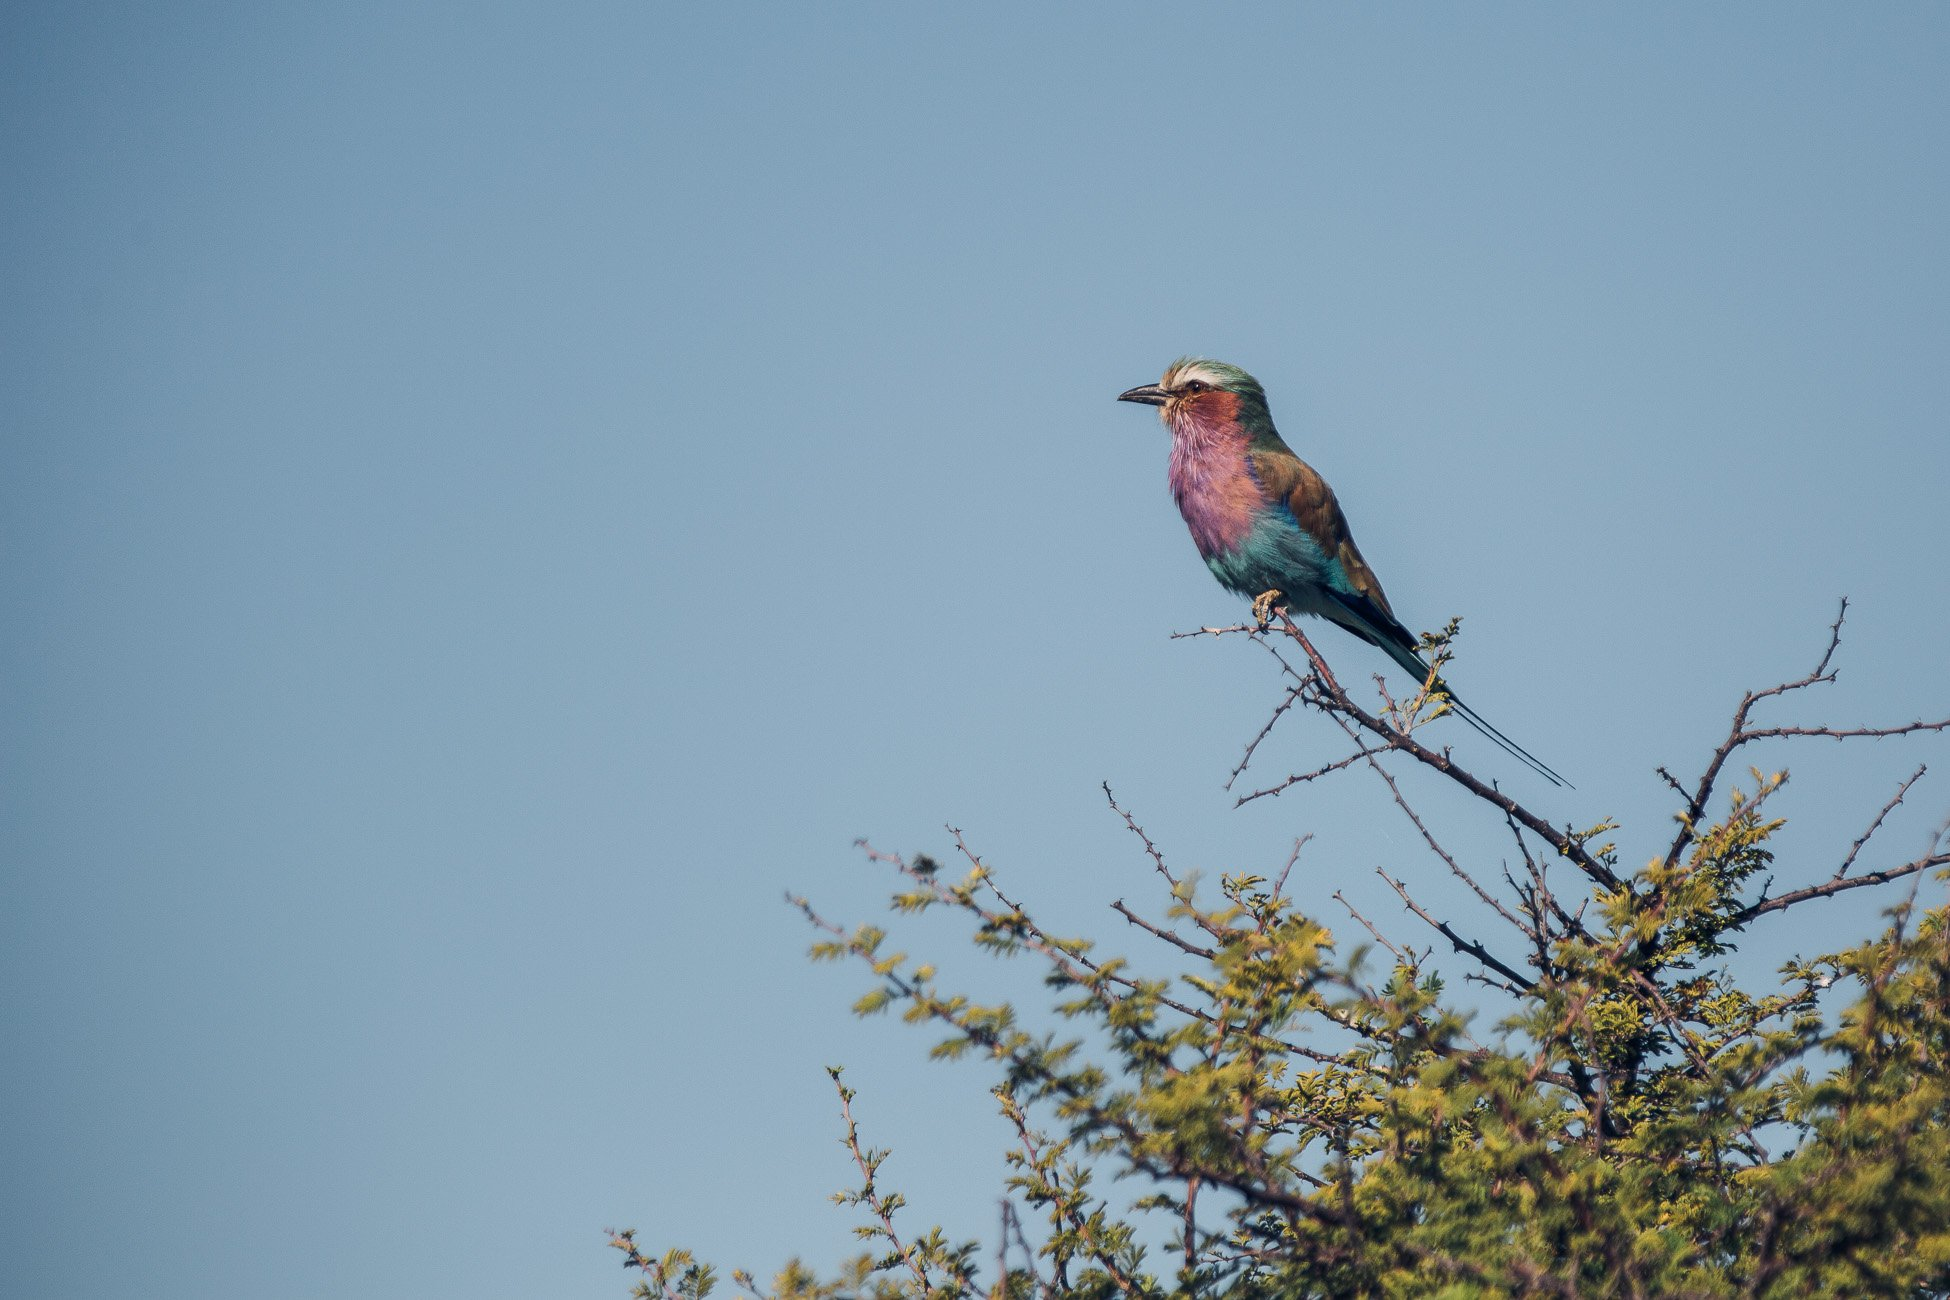 Lilac breasted roller at Etosha National Park